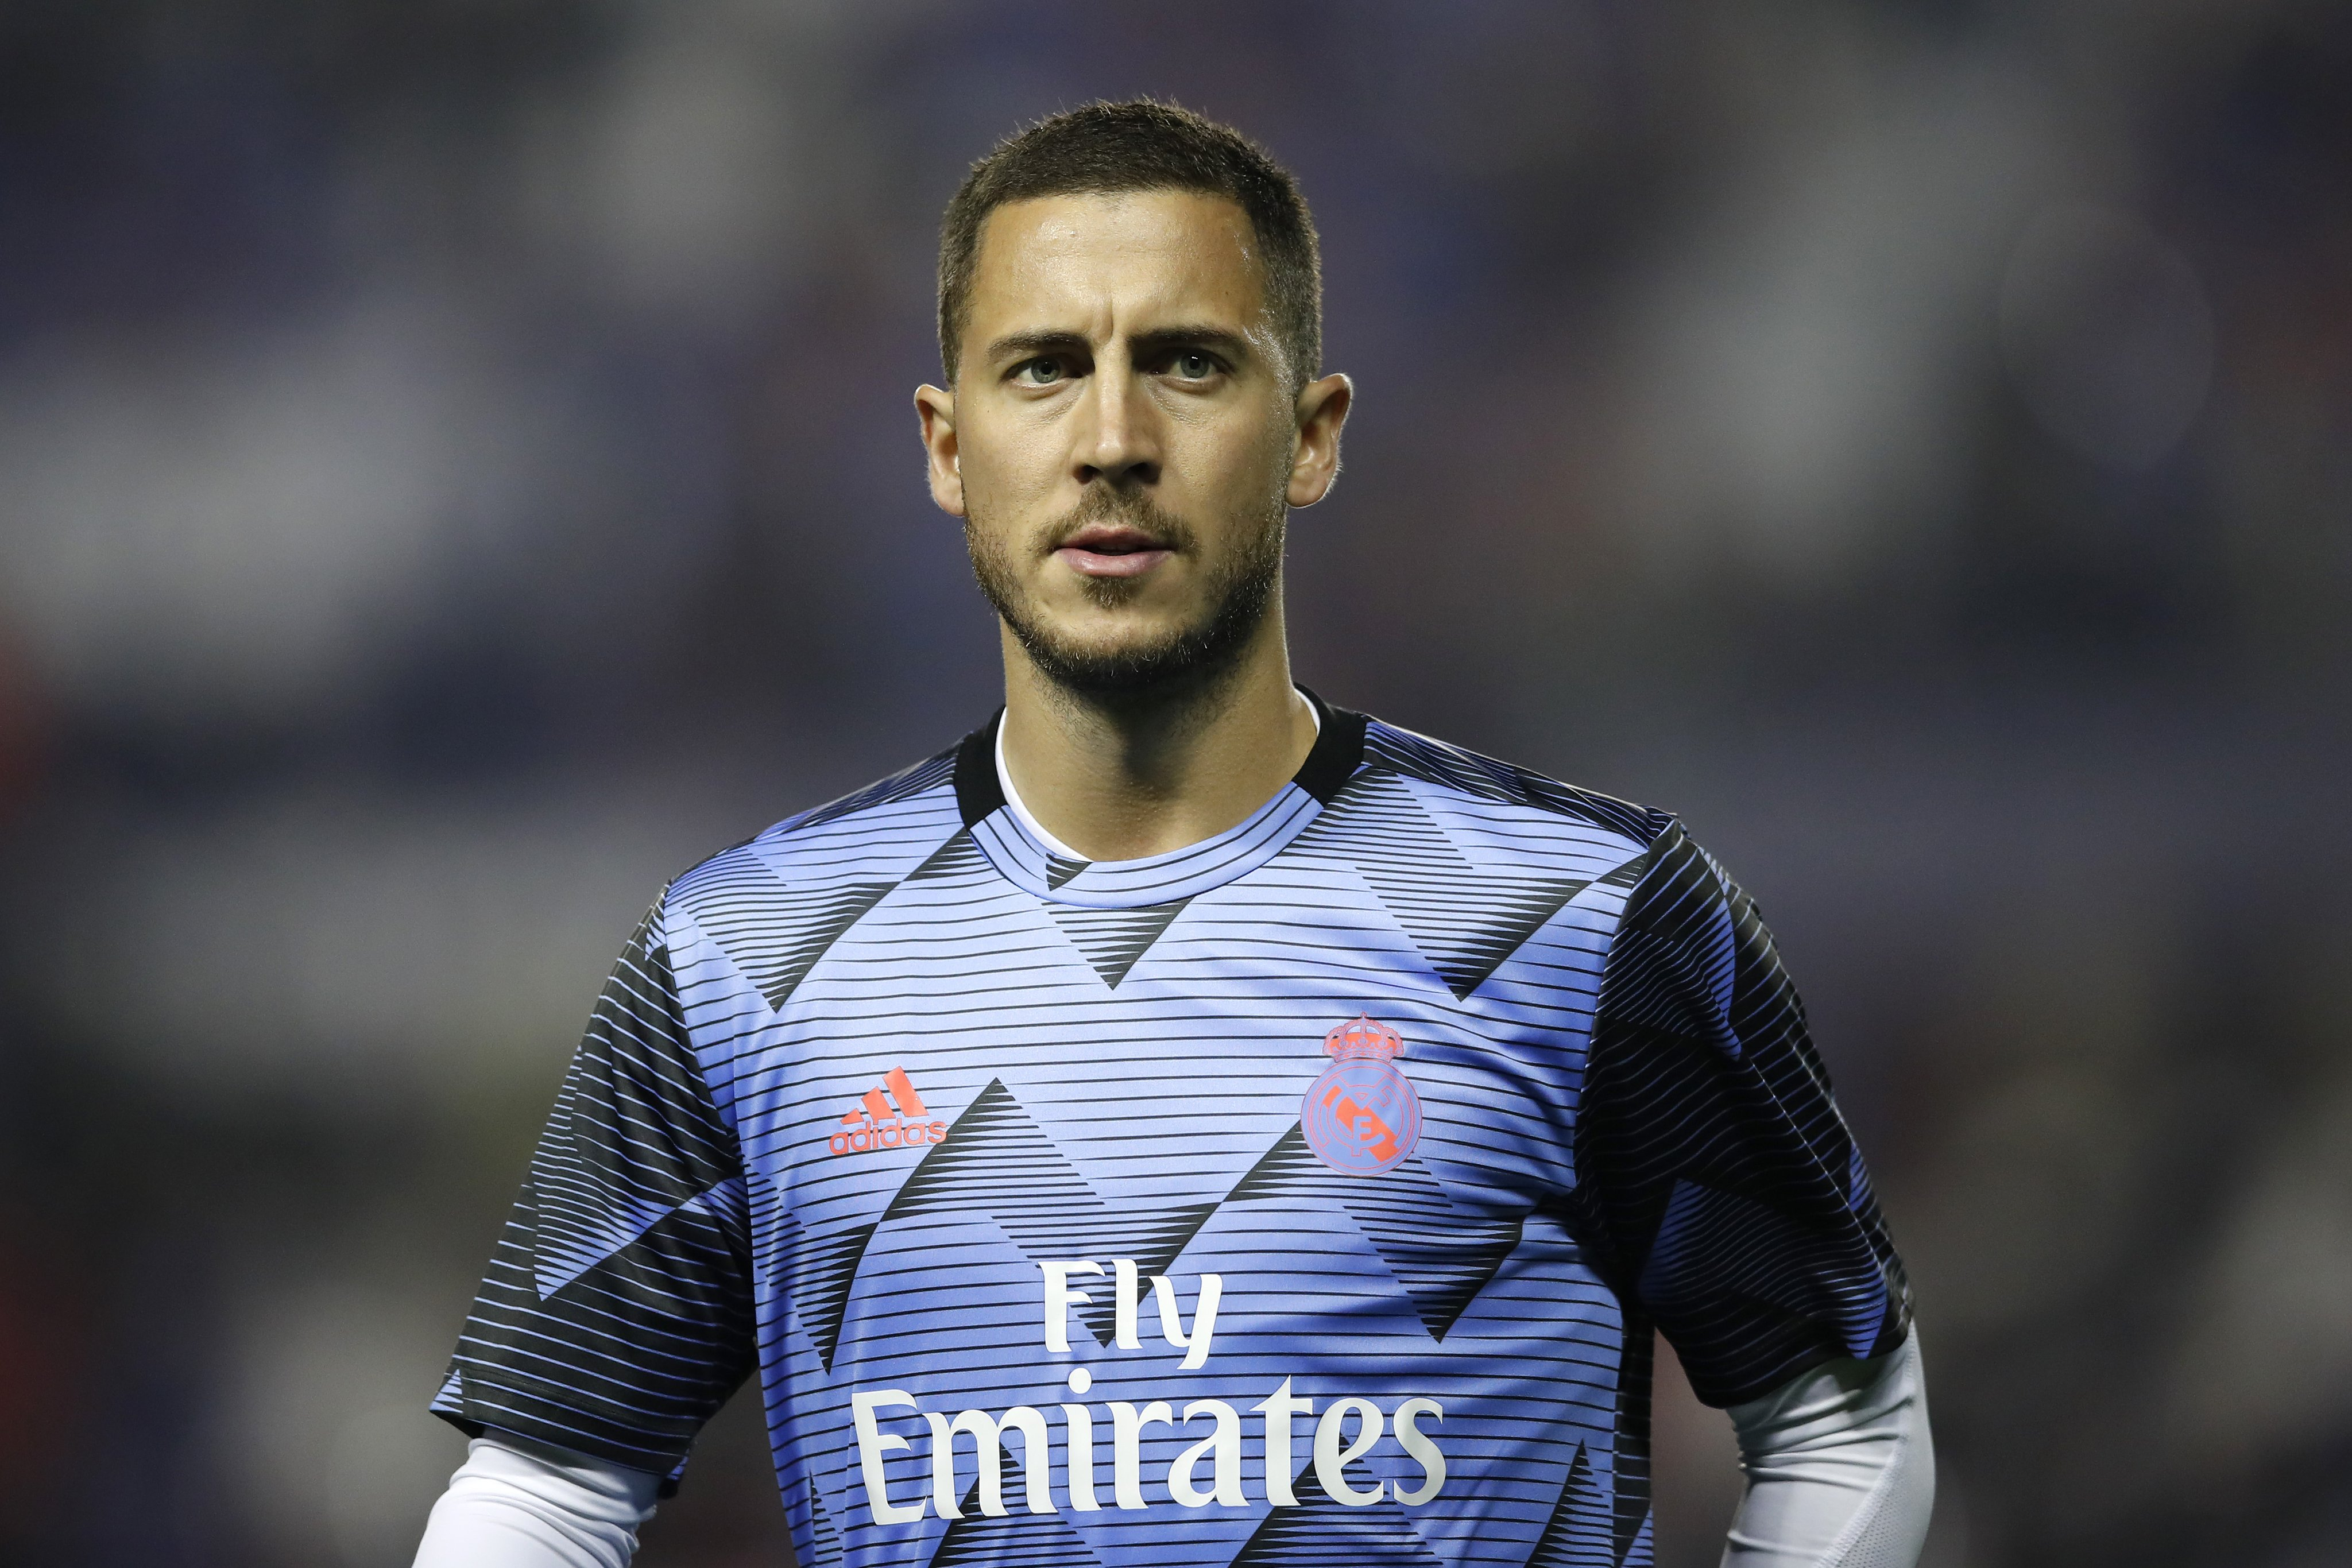 Eden Hazard admits he is a Madrid flop after his first season